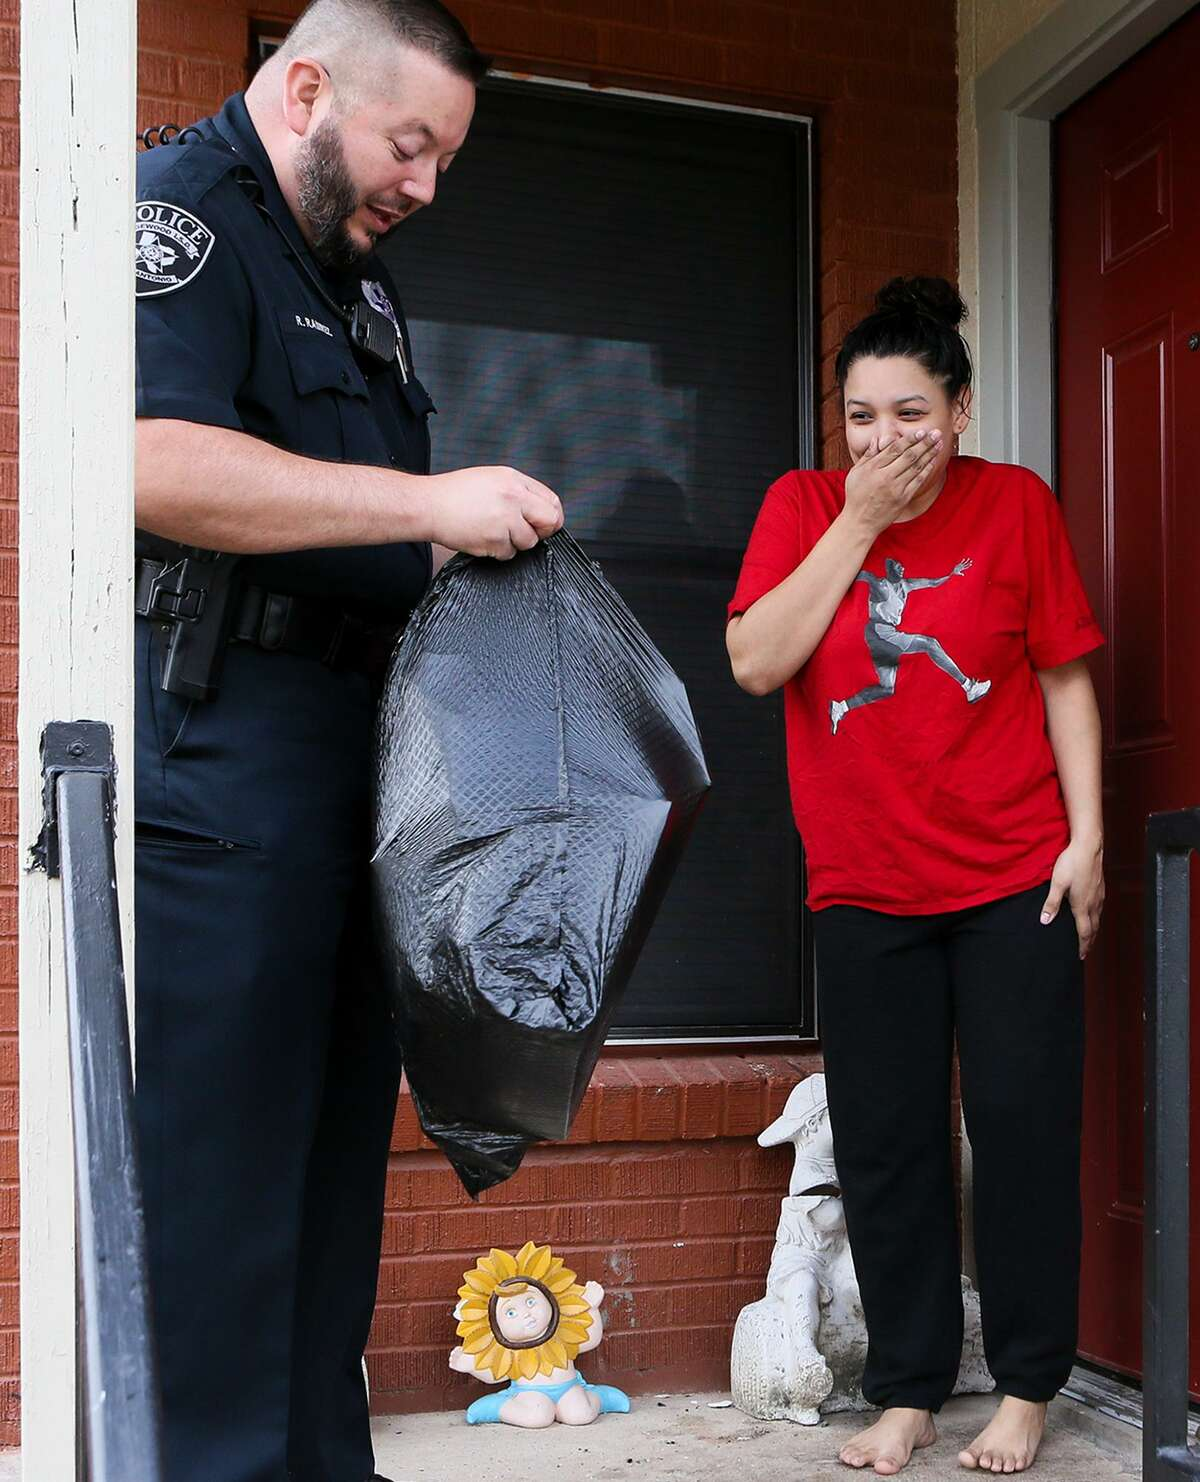 Frances Morales reacts as Edgewood ISD police officer Rene Ramirez begins to deliver Christmas presents to her six children on Wednesday, Dec. 19, 2018. For the fourth consecutive year, the Edgewood ISD police department is delivering presents to over 200 children in the school district, identified by officers, counselors and teachers, that might not otherwise receive presents.